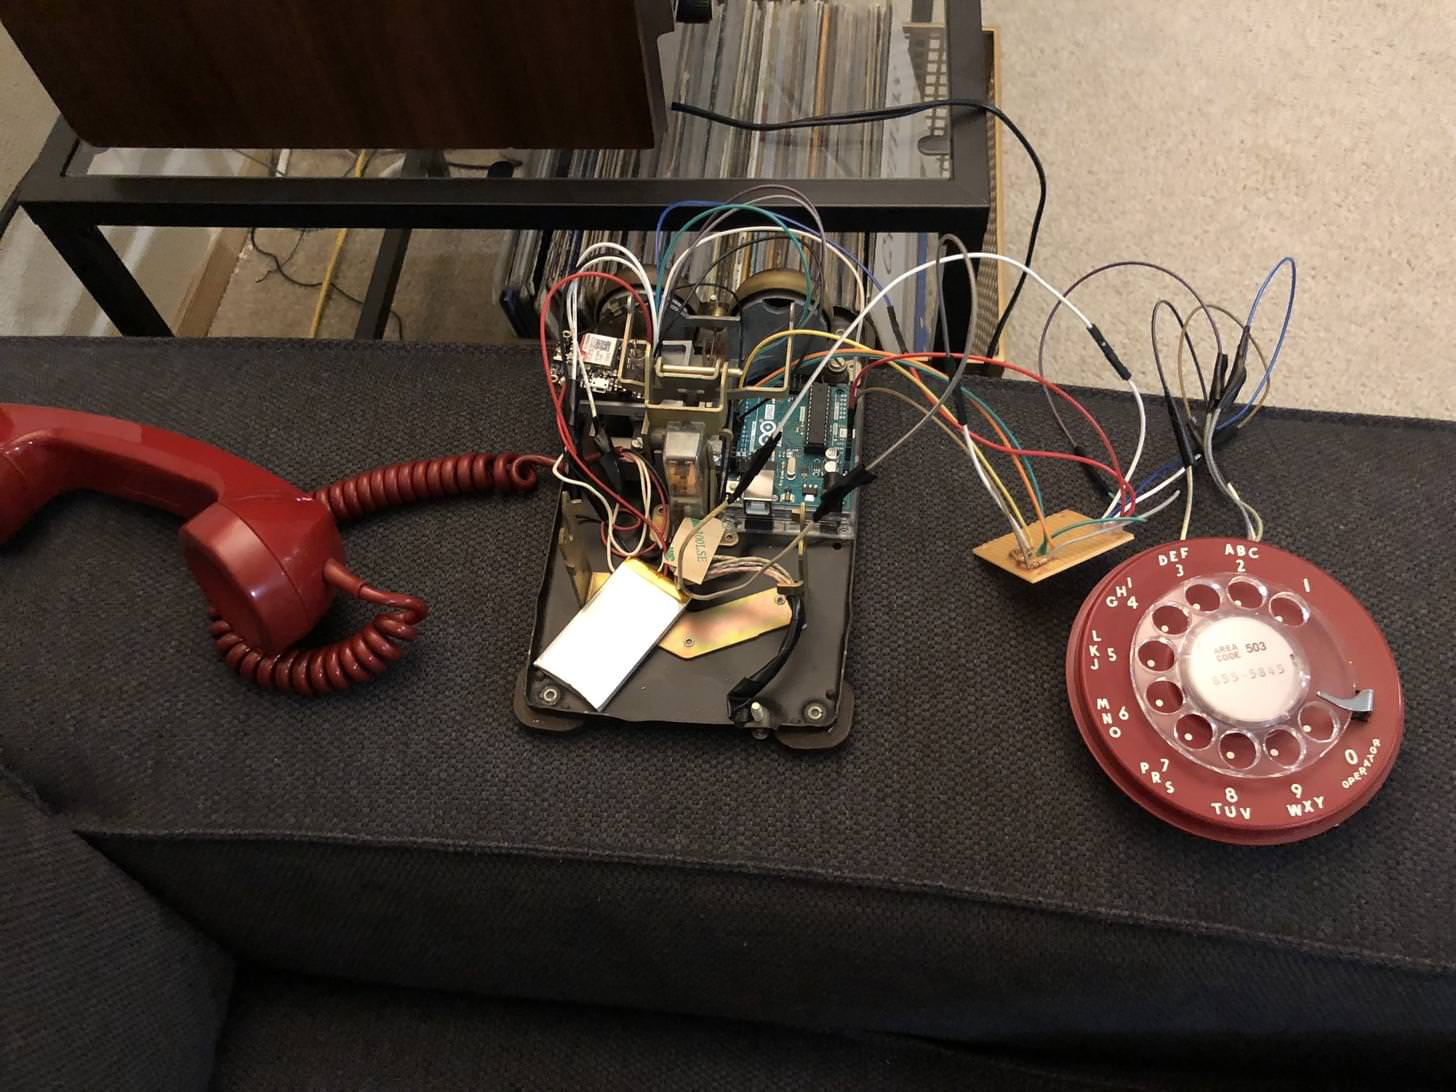 Arduino Blog 1961 Rotary Phone Gets A 2018 Cellular Upgrade Audio Using Microphone With An Electrical Engineering While Its Hard To Beat Todays Mobile Devices Functionality Wise If You Need Built Like Tank And Designed For Voice Communication